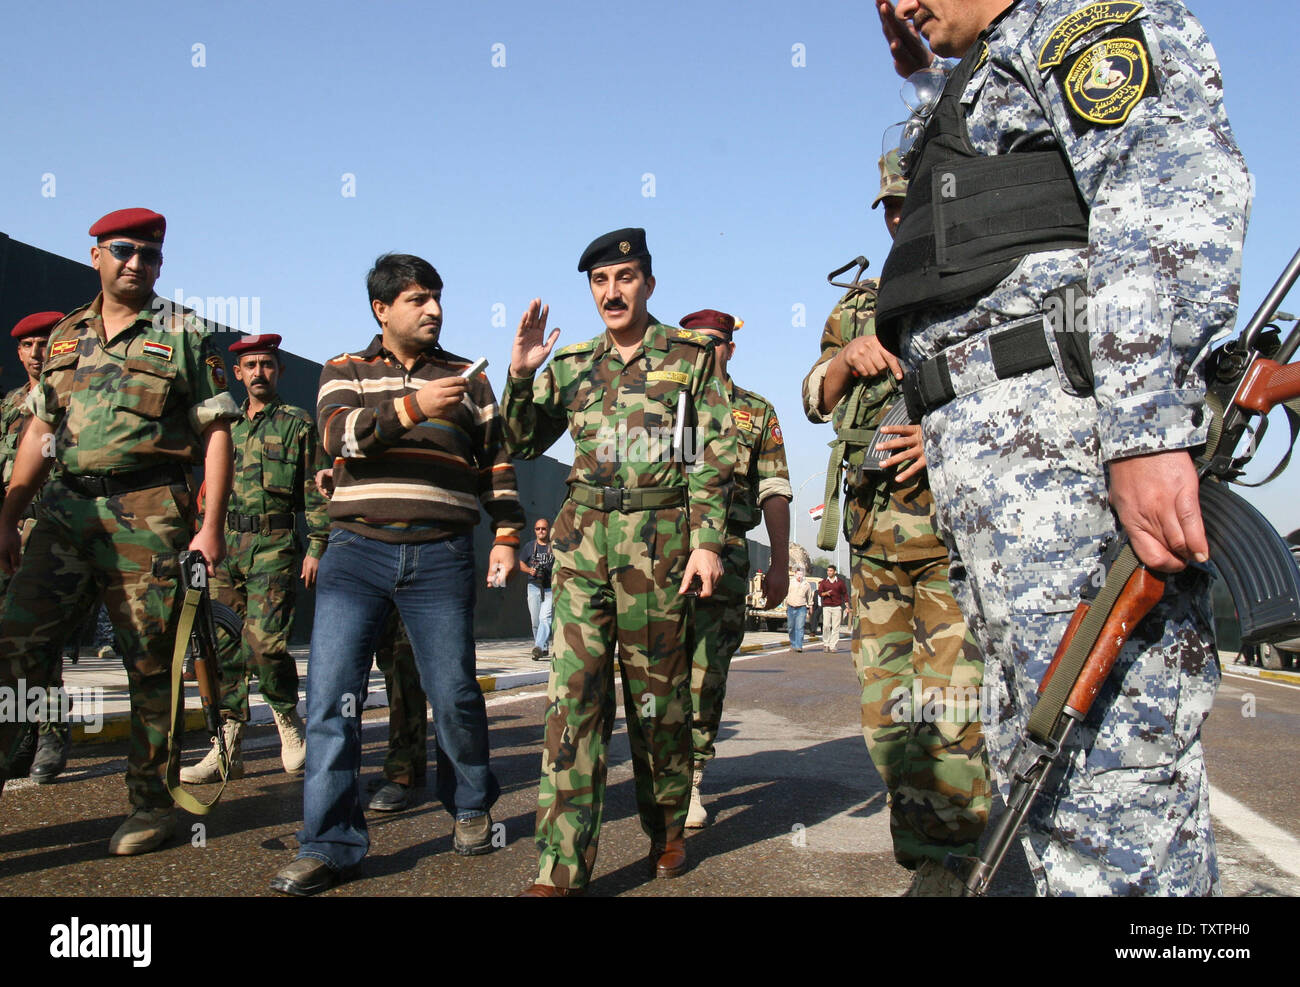 A District Of Baghdad High Resolution Stock Photography And Images Alamy